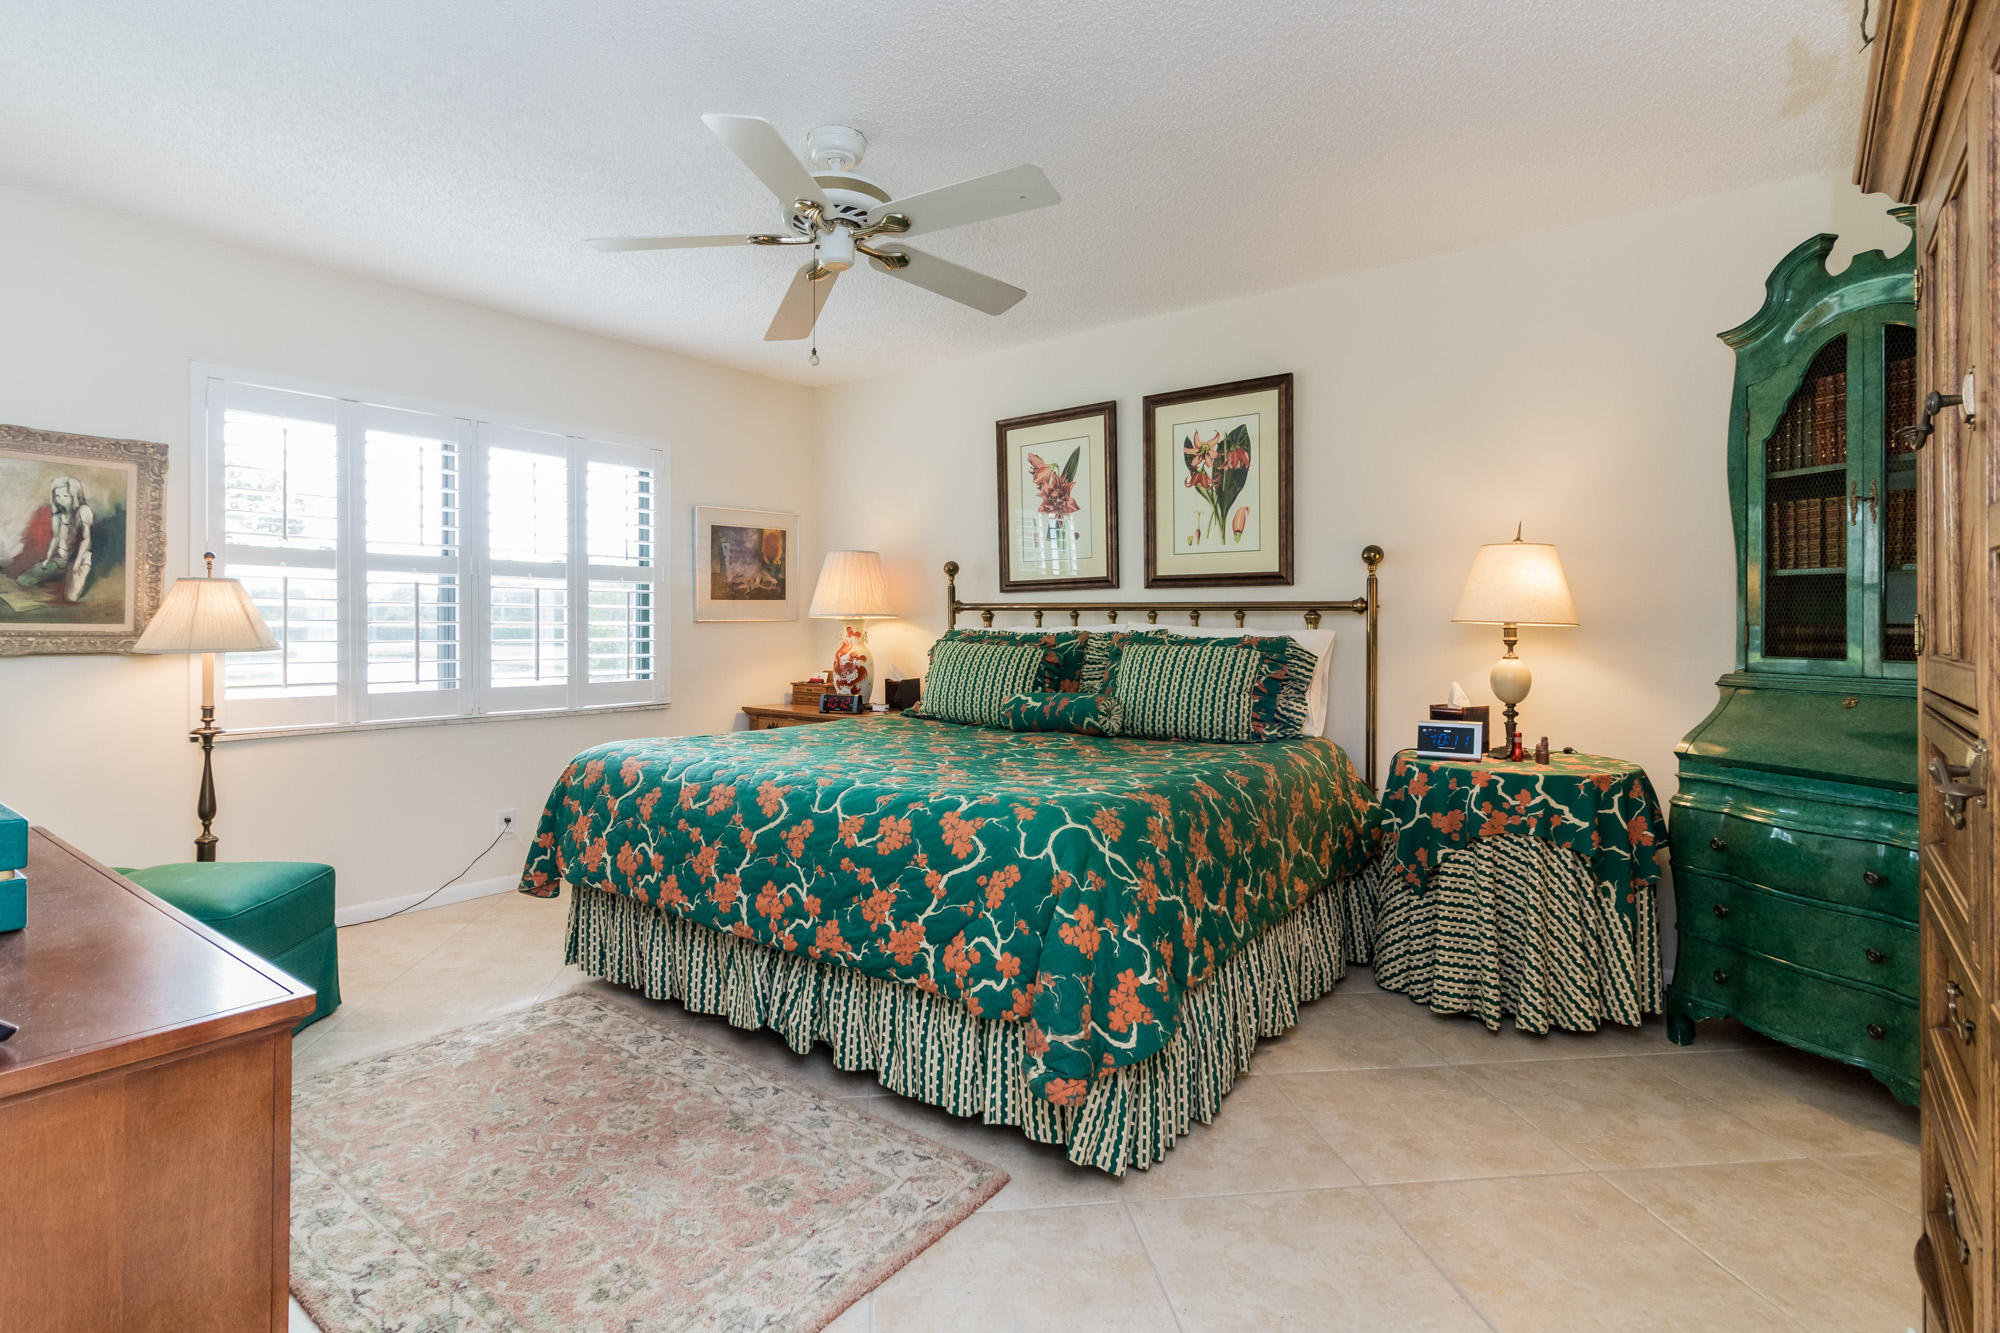 12870 Briarlake Drive 204, Palm Beach Gardens, Florida 33418, 2 Bedrooms Bedrooms, ,2 BathroomsBathrooms,A,Condominium,Briarlake,RX-10493404